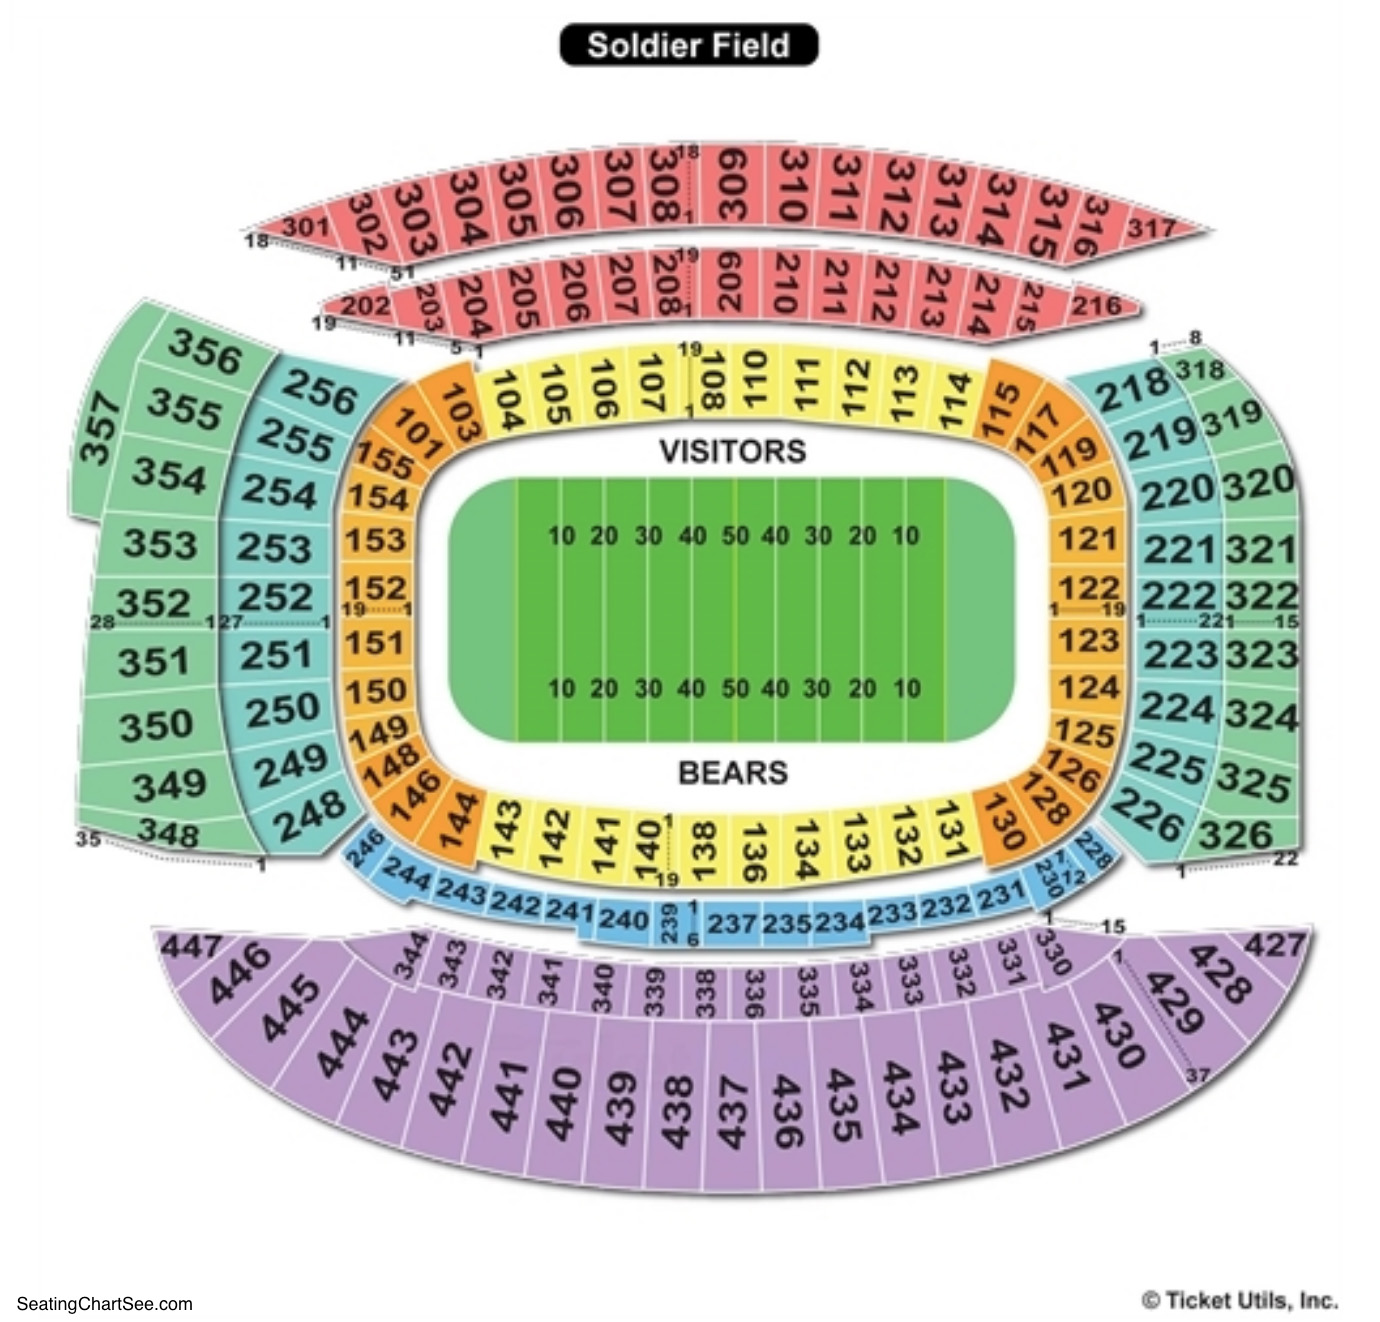 Soldier Field Seating Chart Football